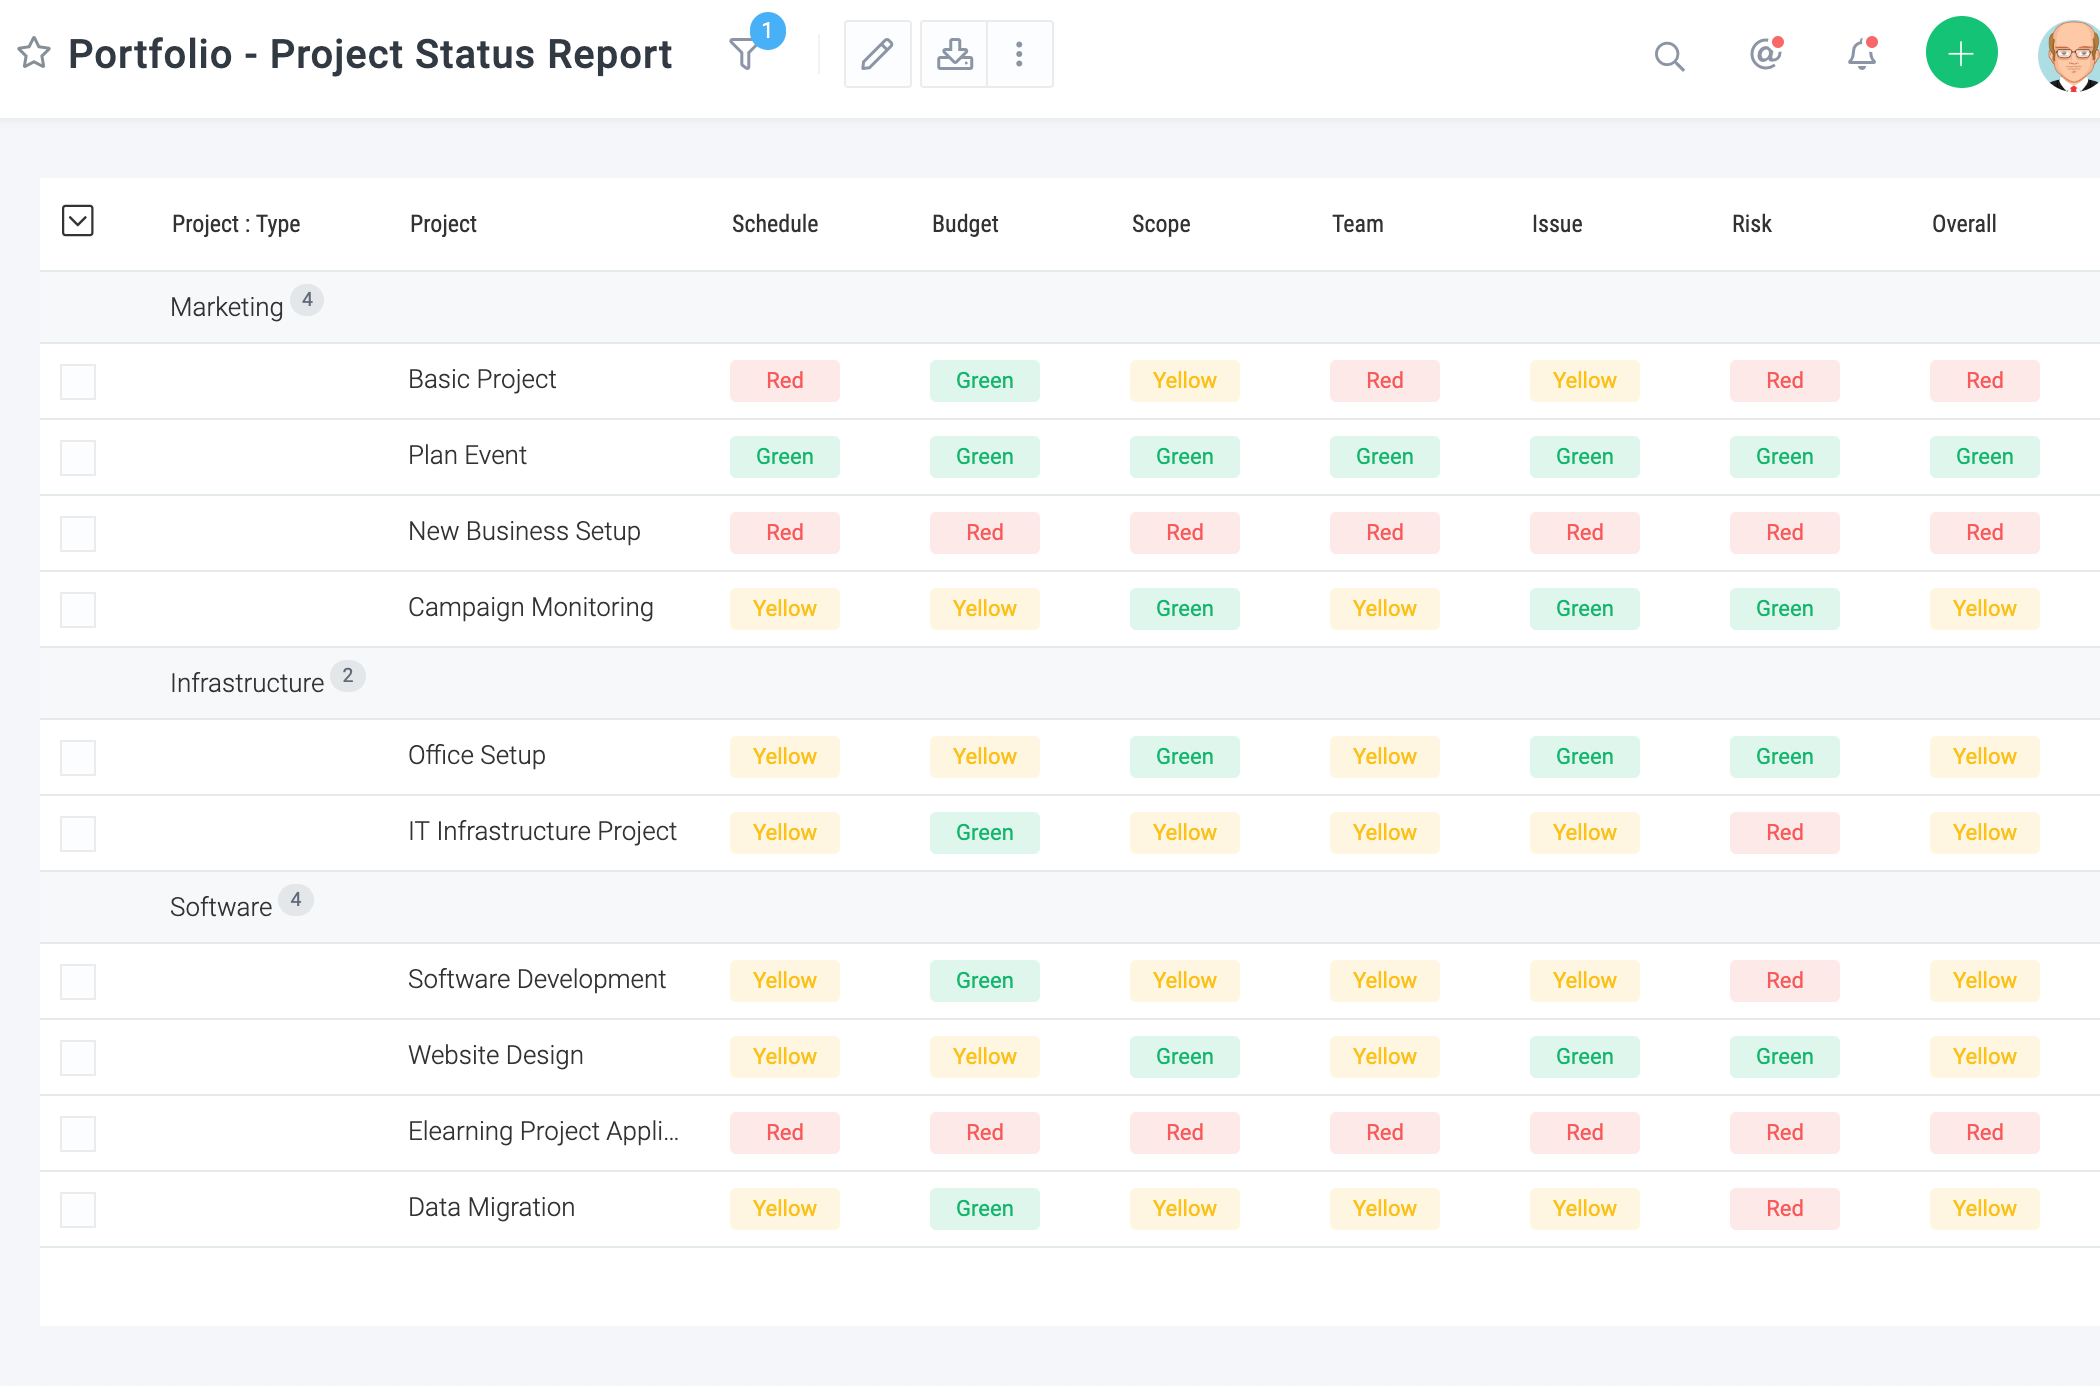 Celoxis Software - Project Status Report